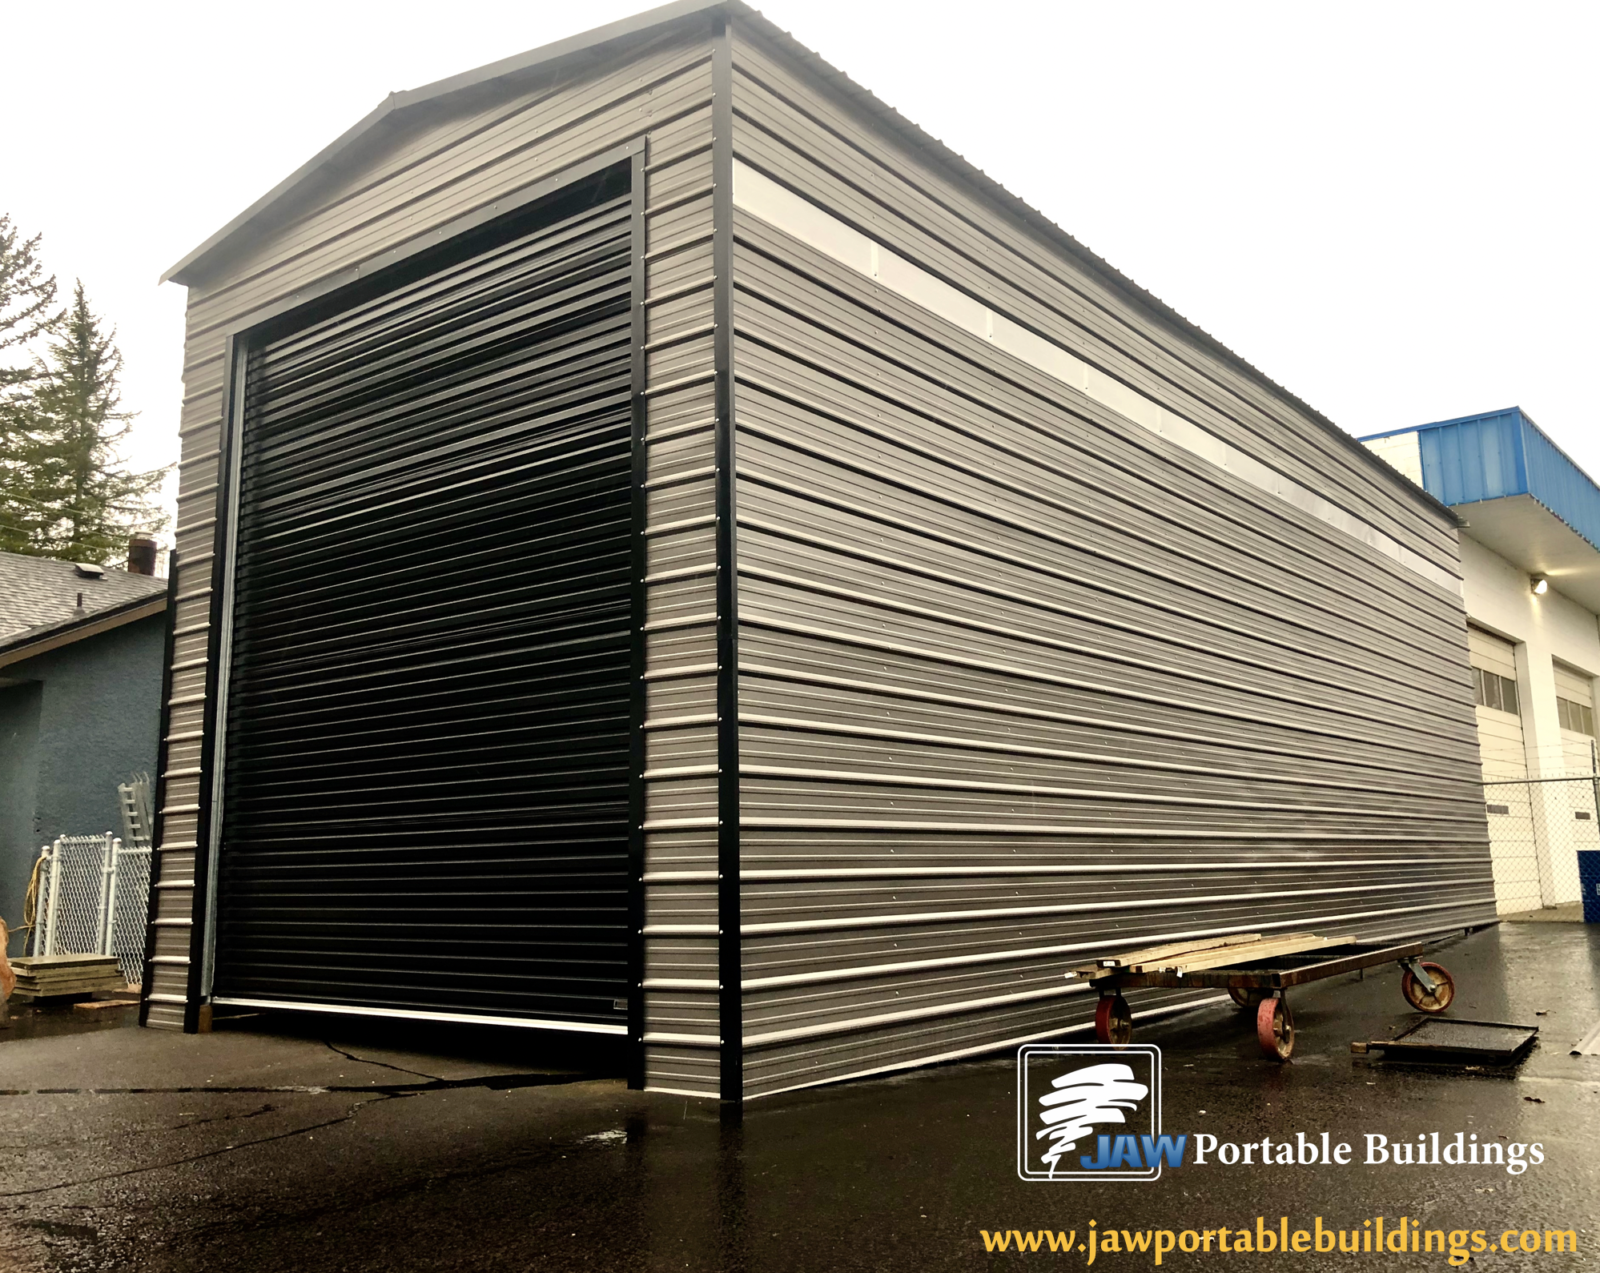 Unique Metal Carports Garages - JAW Portable Buildings